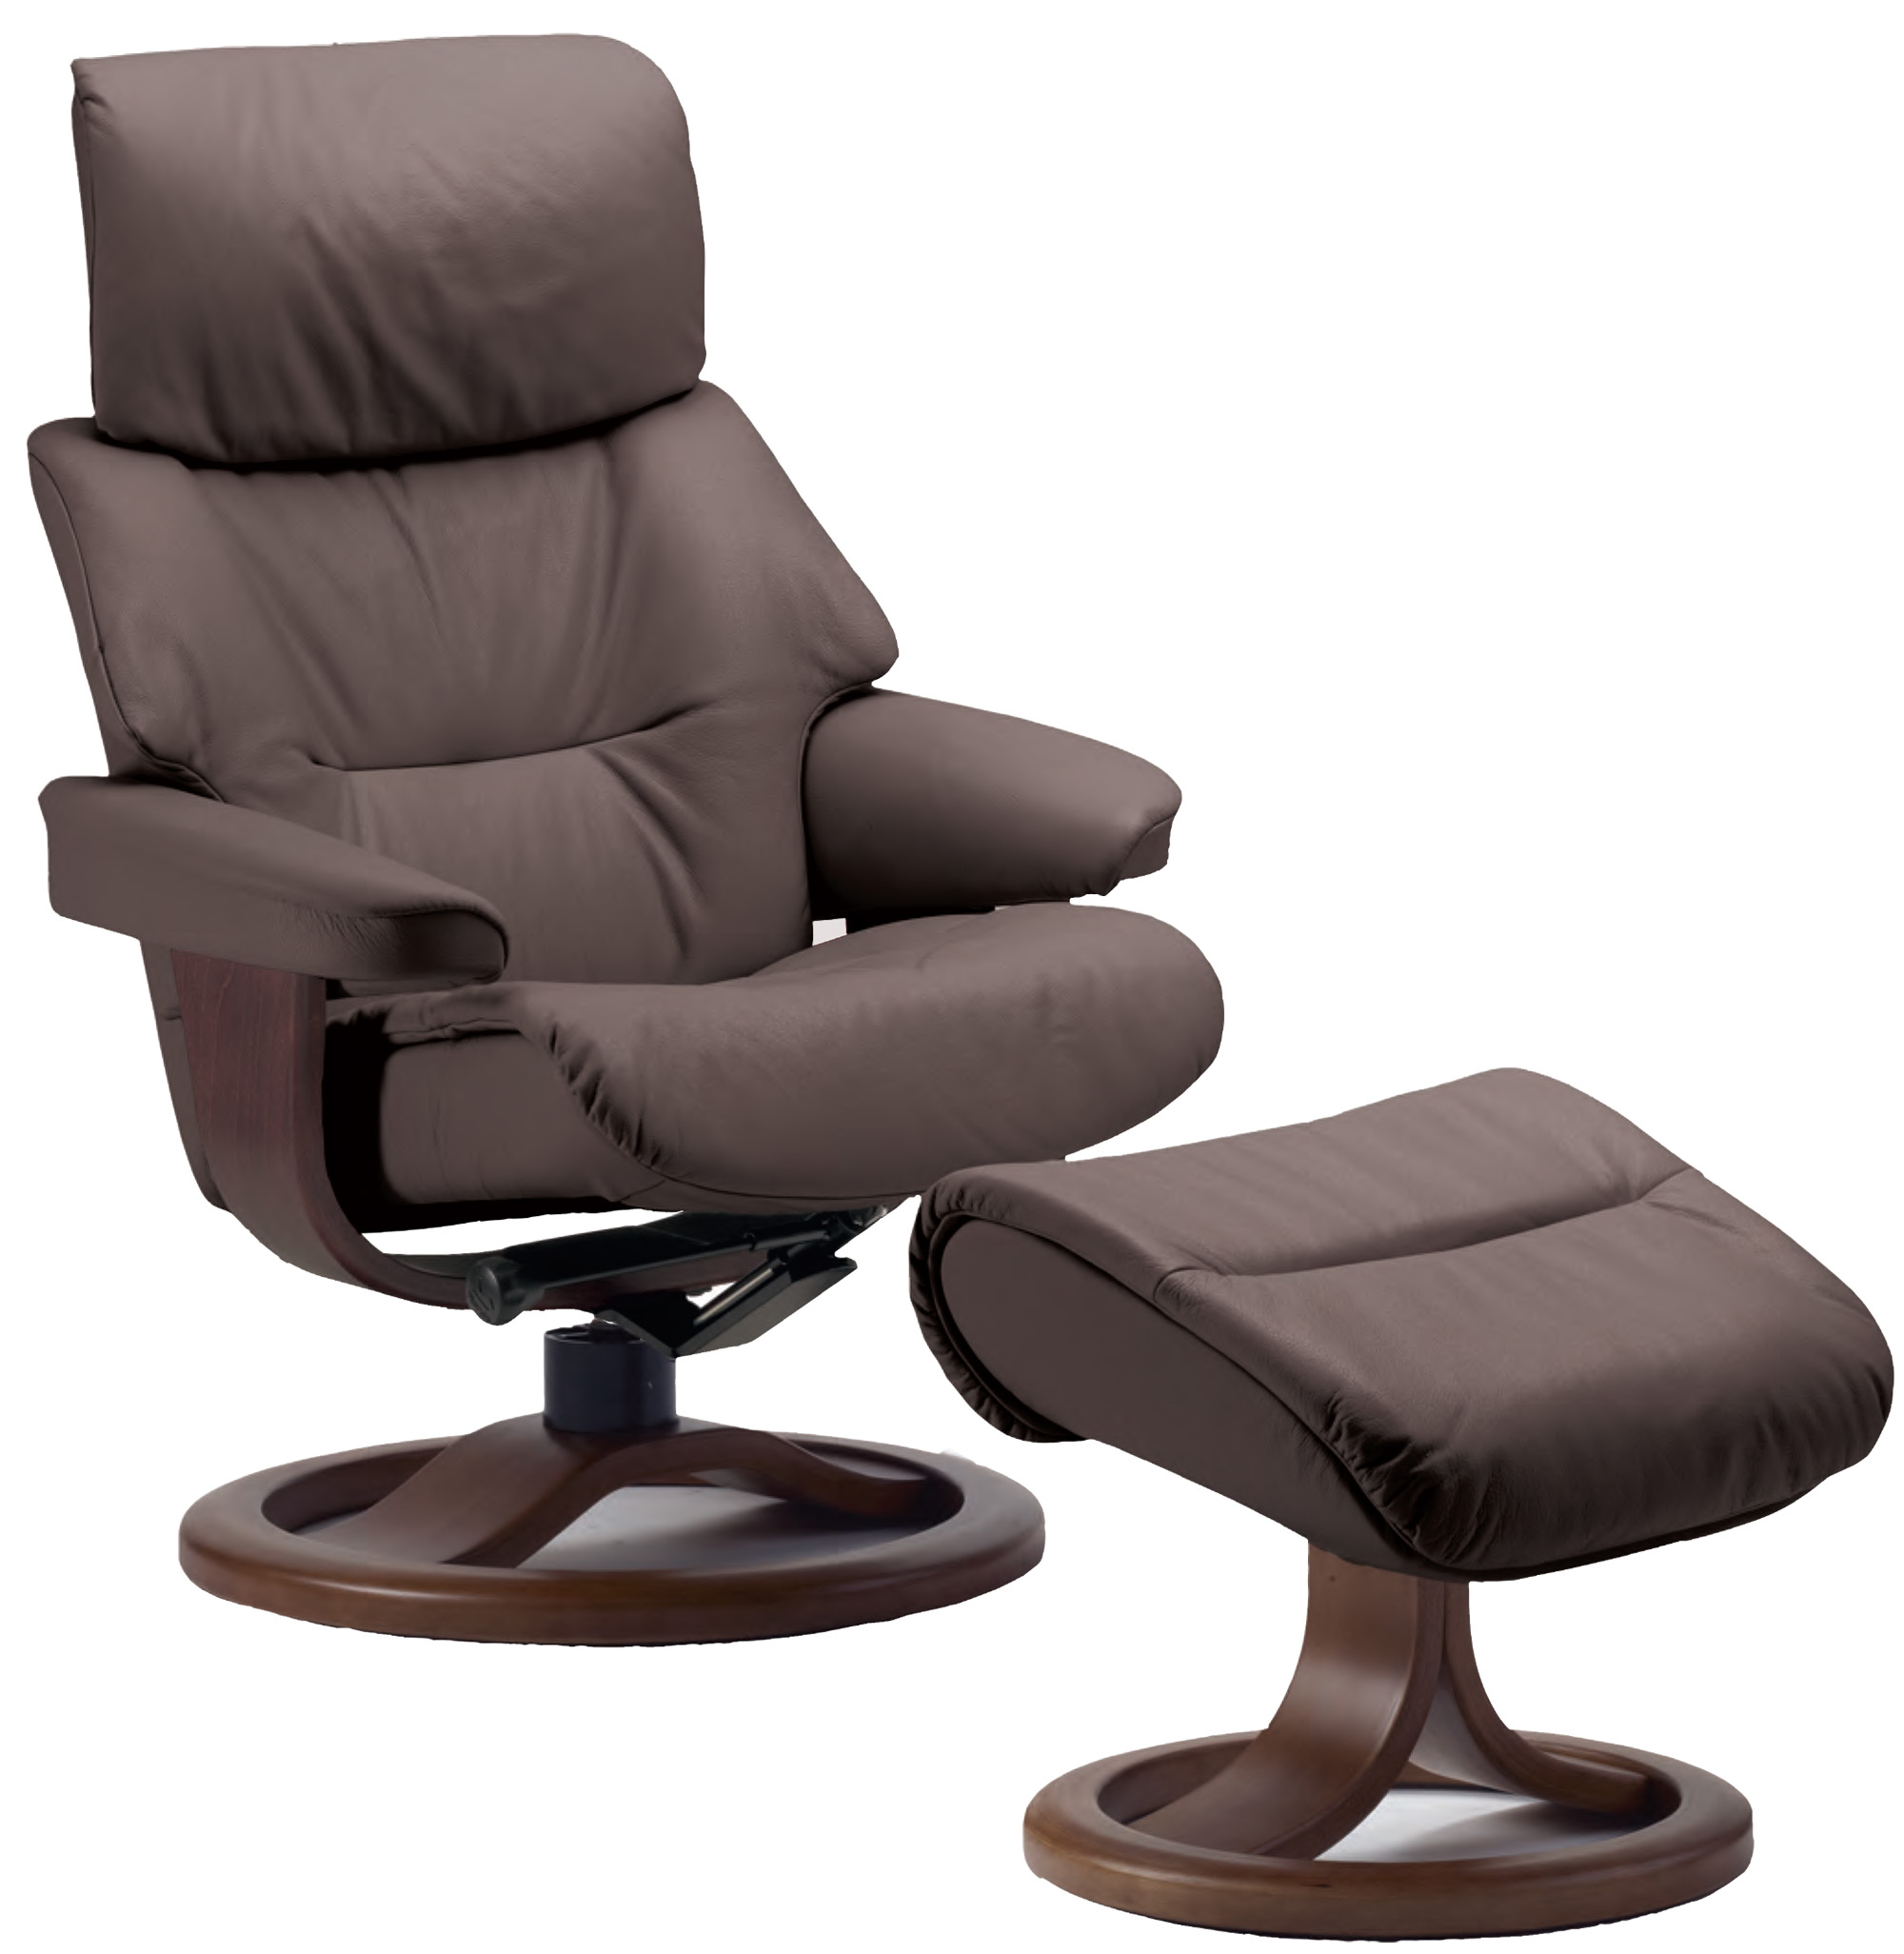 bassett head power bhvo item foot products width height trim level reclinerolsen recliner basf w threshold olsen leather club